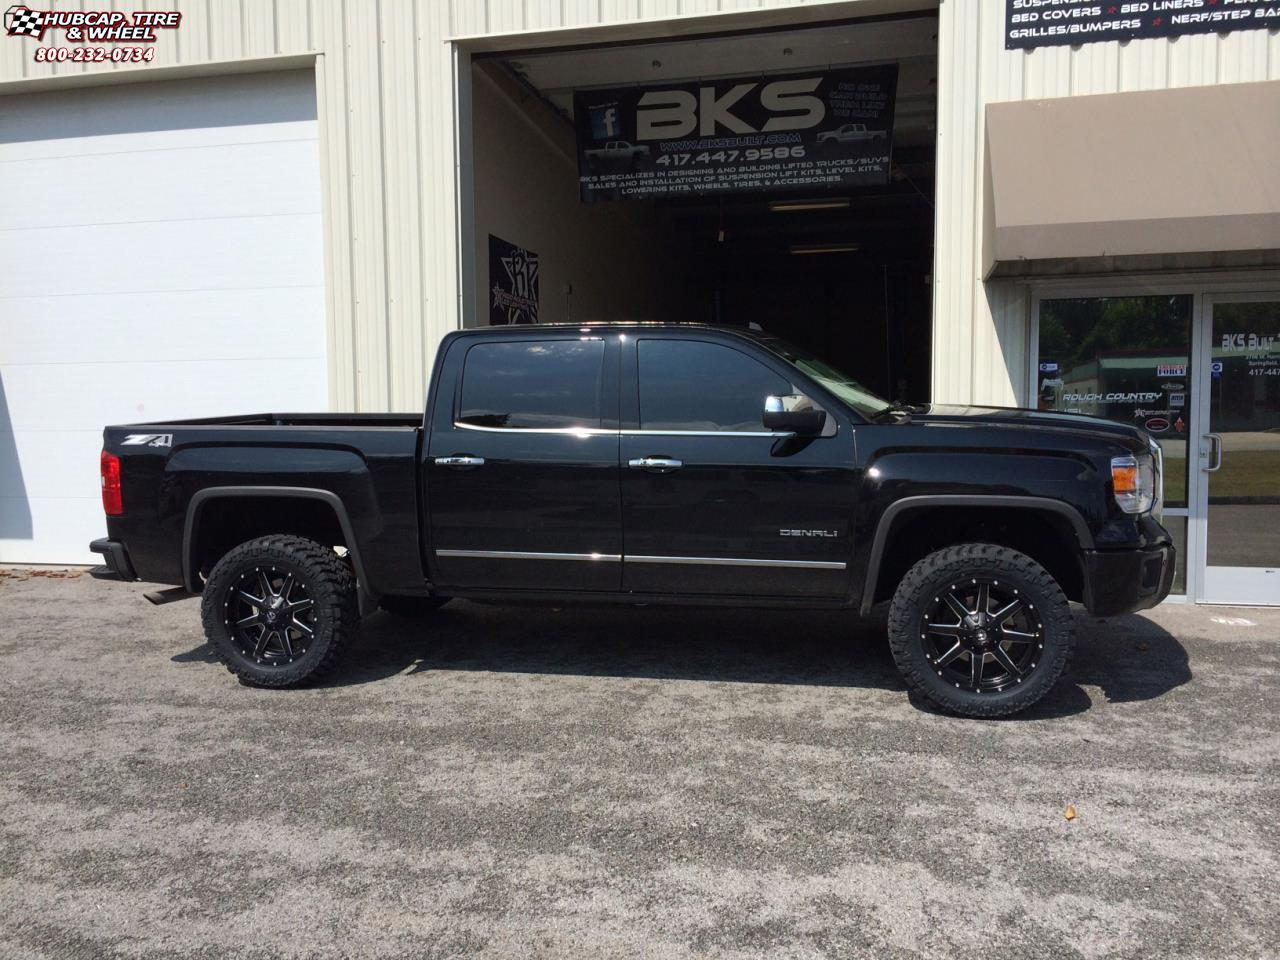 Gmc Sierra 2500 Hd Fuel Lethal D567 20X10 Wheels Rims 196 moreover Lrv Protecta Truck Bed Mats likewise Chevrolet Tahoe Dub Push S110 24X9 5 Wheels Rims 2566 moreover Bmw 760 Dub Baller S116 24X9 Wheels Rims 2598 as well Chevrolet Corvette Dub Xa80 Tryst 21X10 Wheels Rims 2515. on 1969 gmc truck custom shop